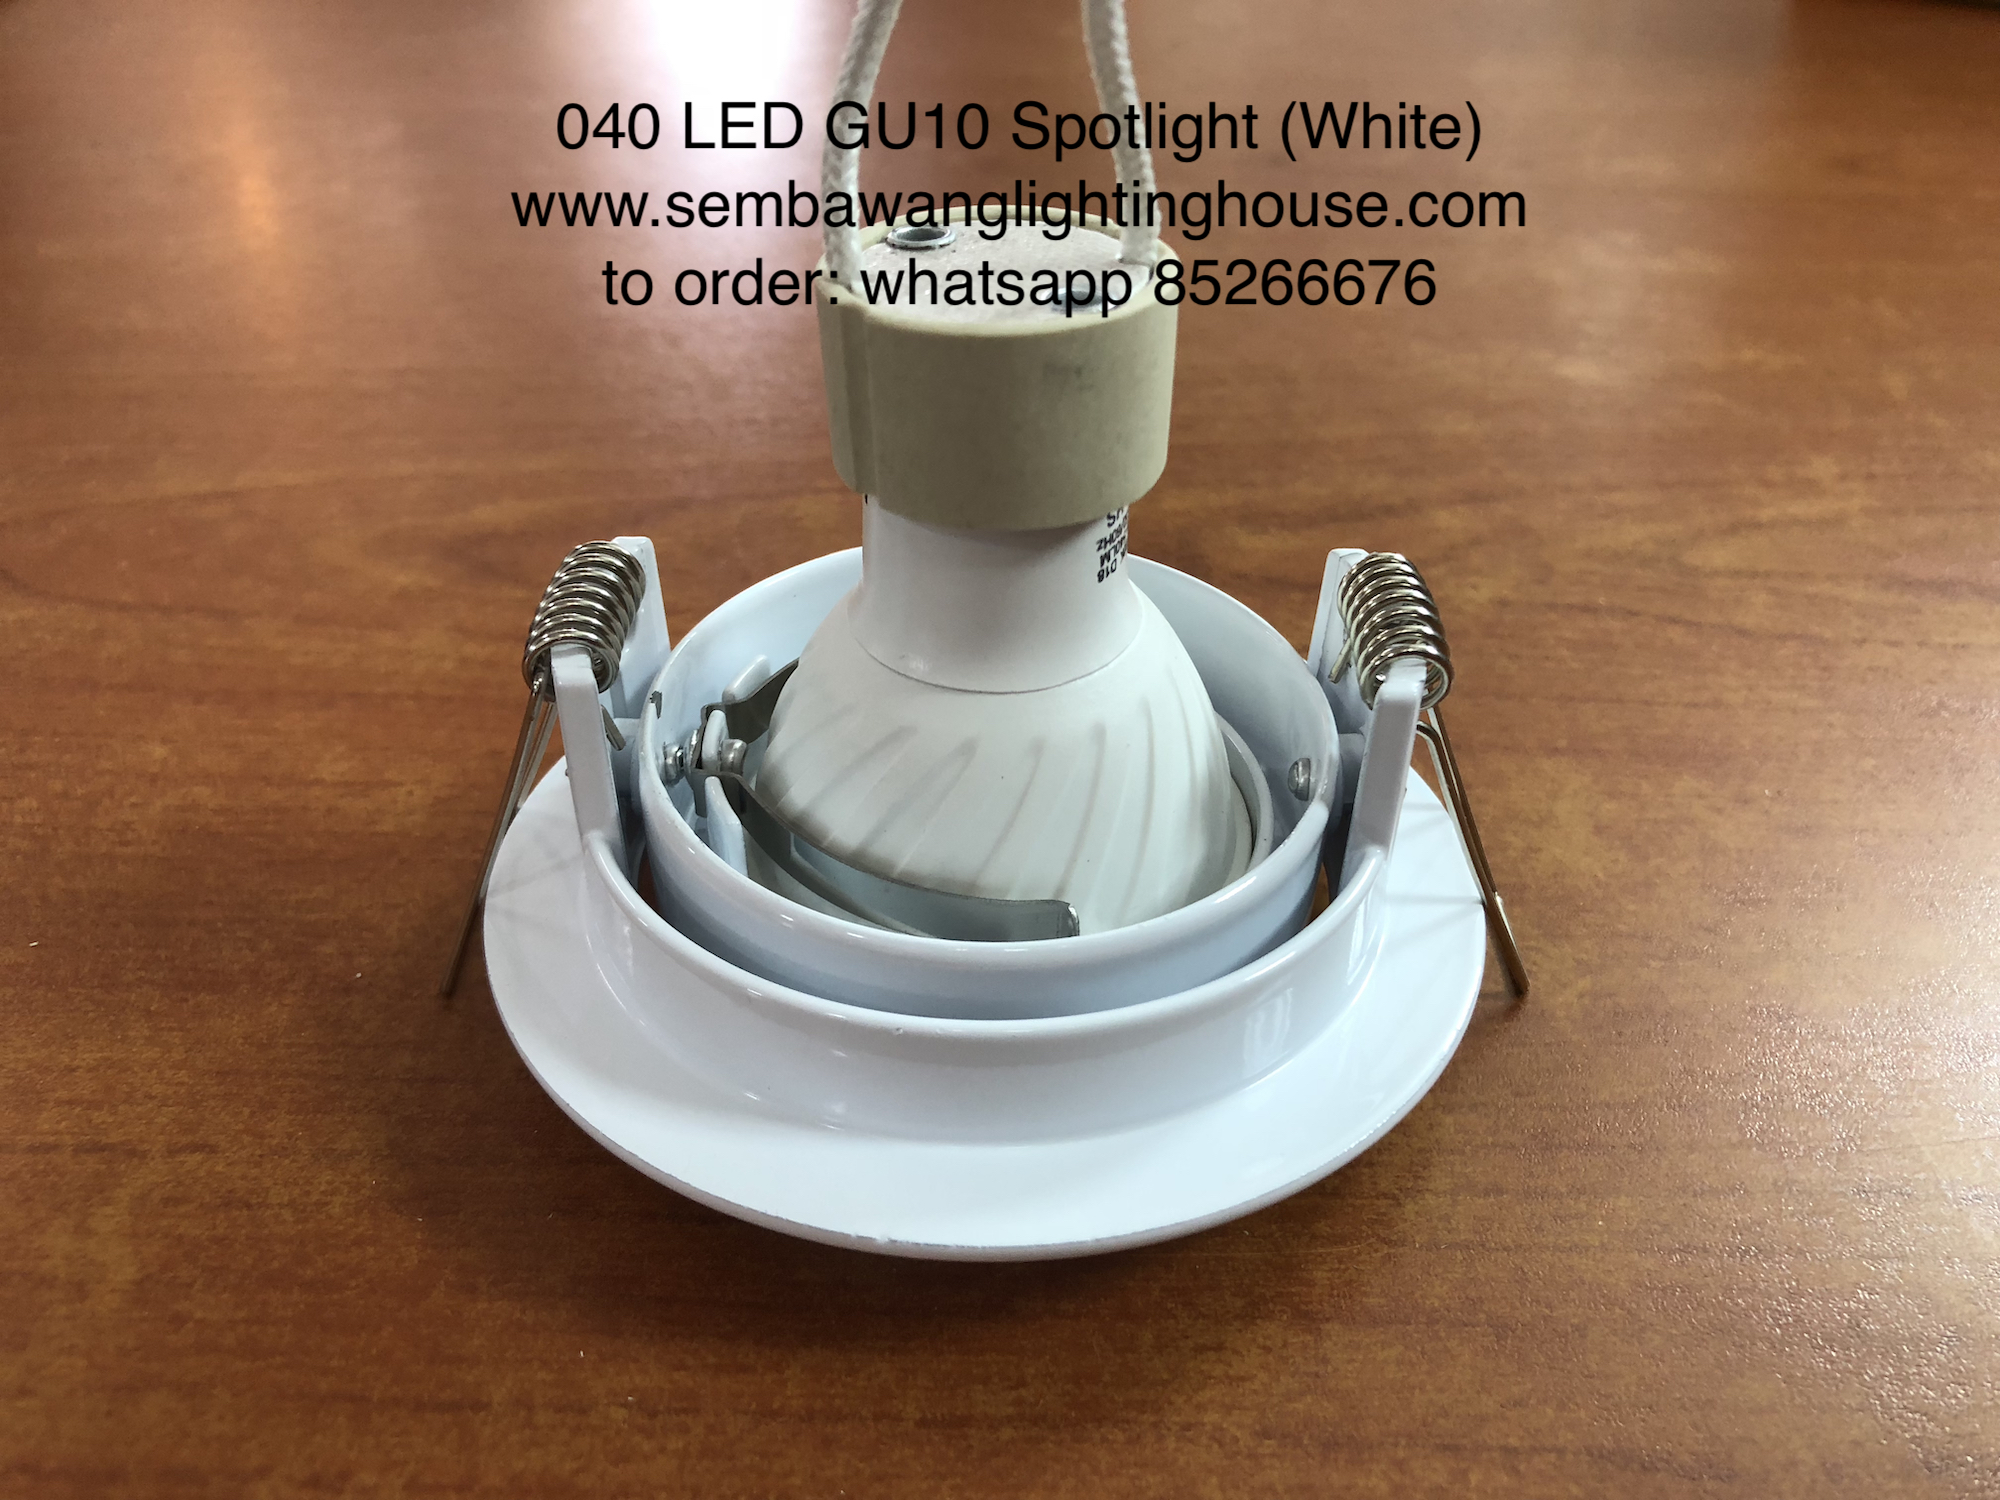 040-wh-led-spotlight-gu10-c.jpg